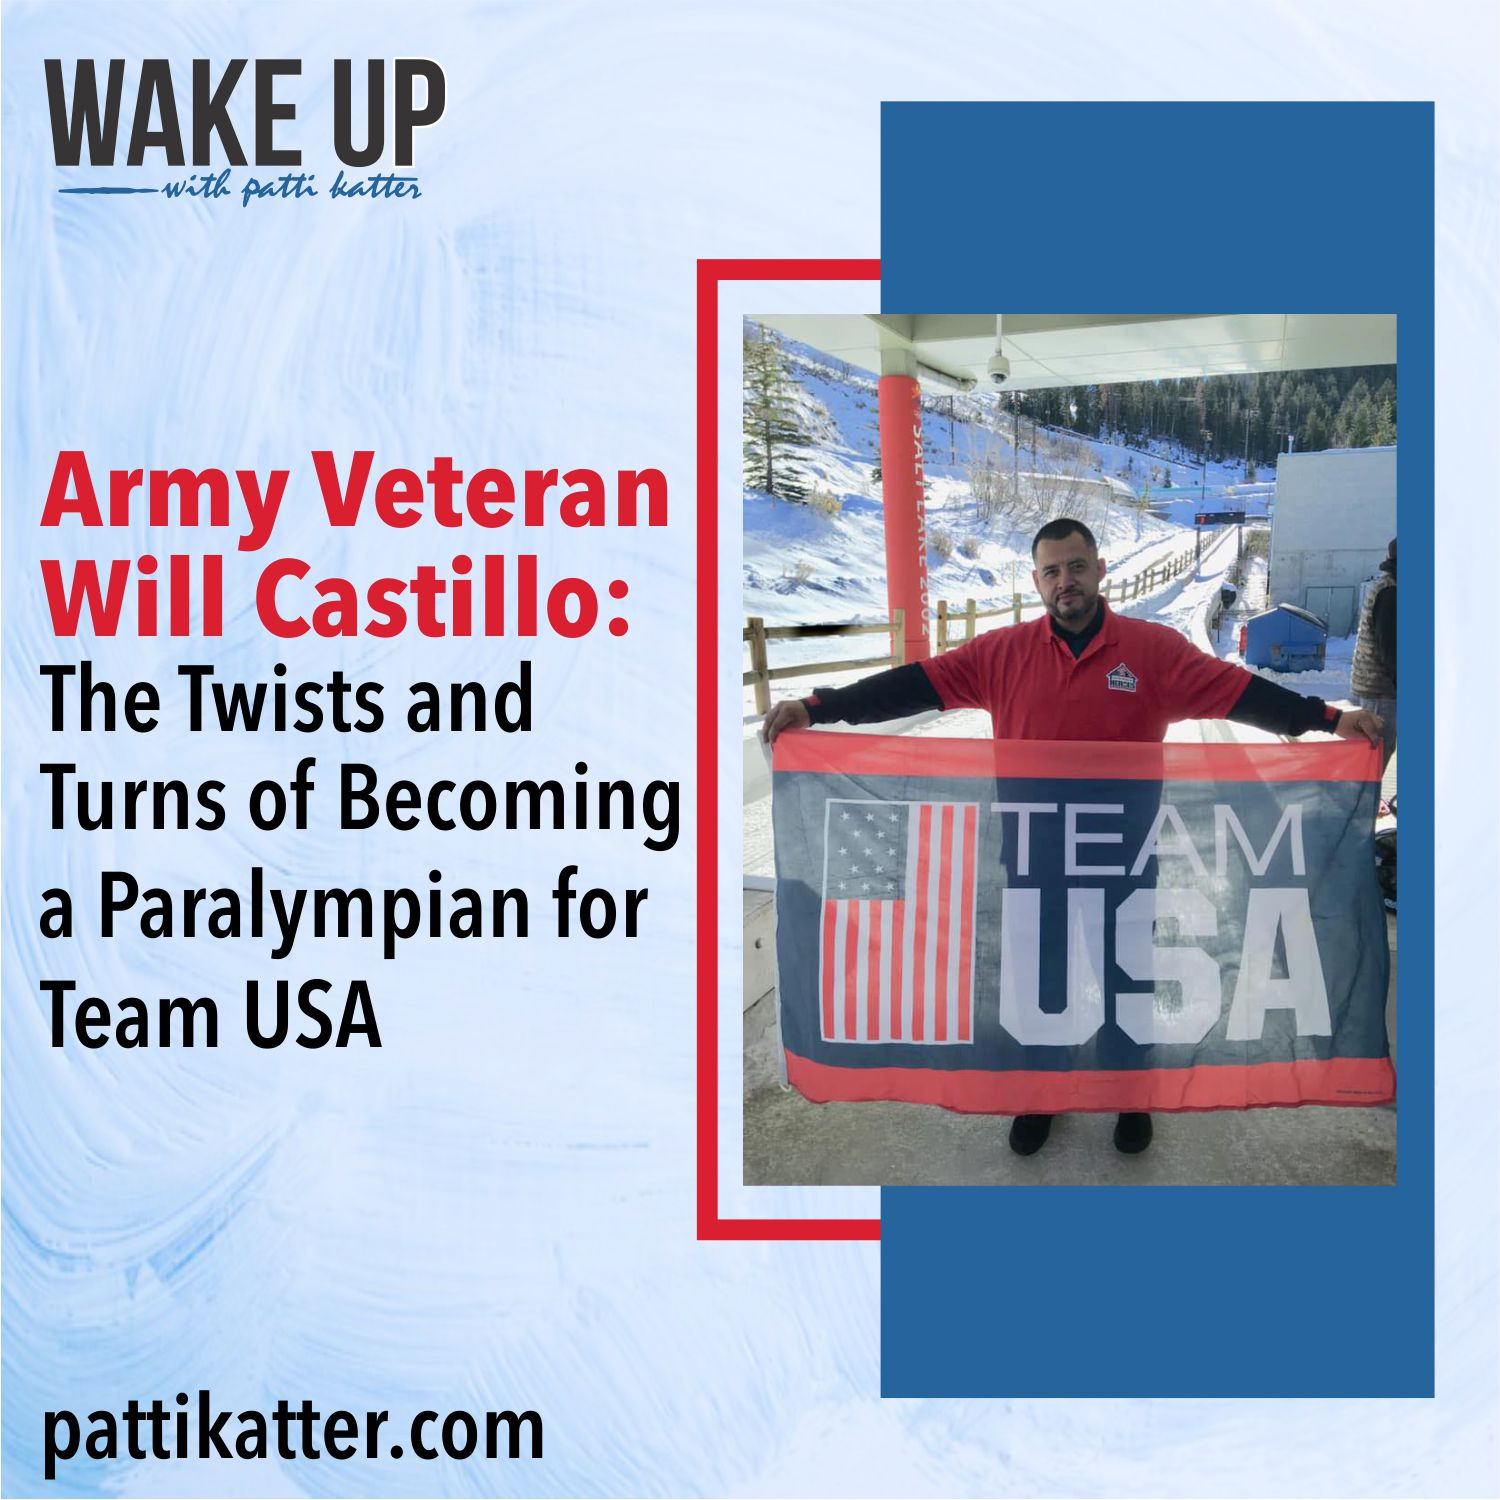 Army Veteran Will Castillo: The Twists and Turns of Becoming a Paralympian for Team USA